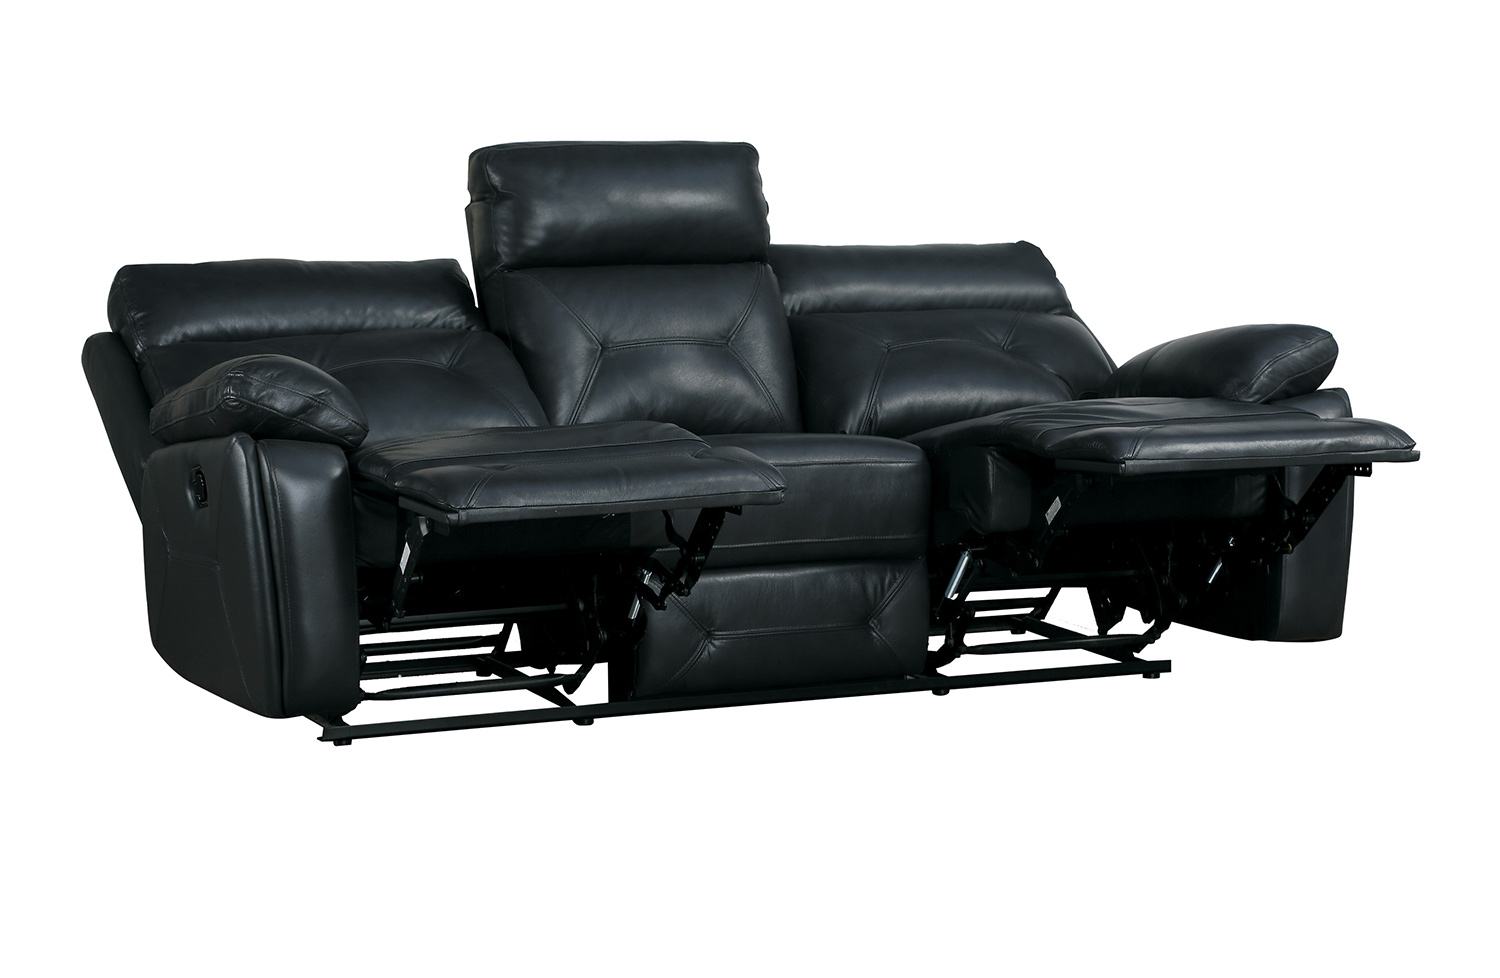 Homelegance Resonance Double Reclining Sofa - Dark Gray